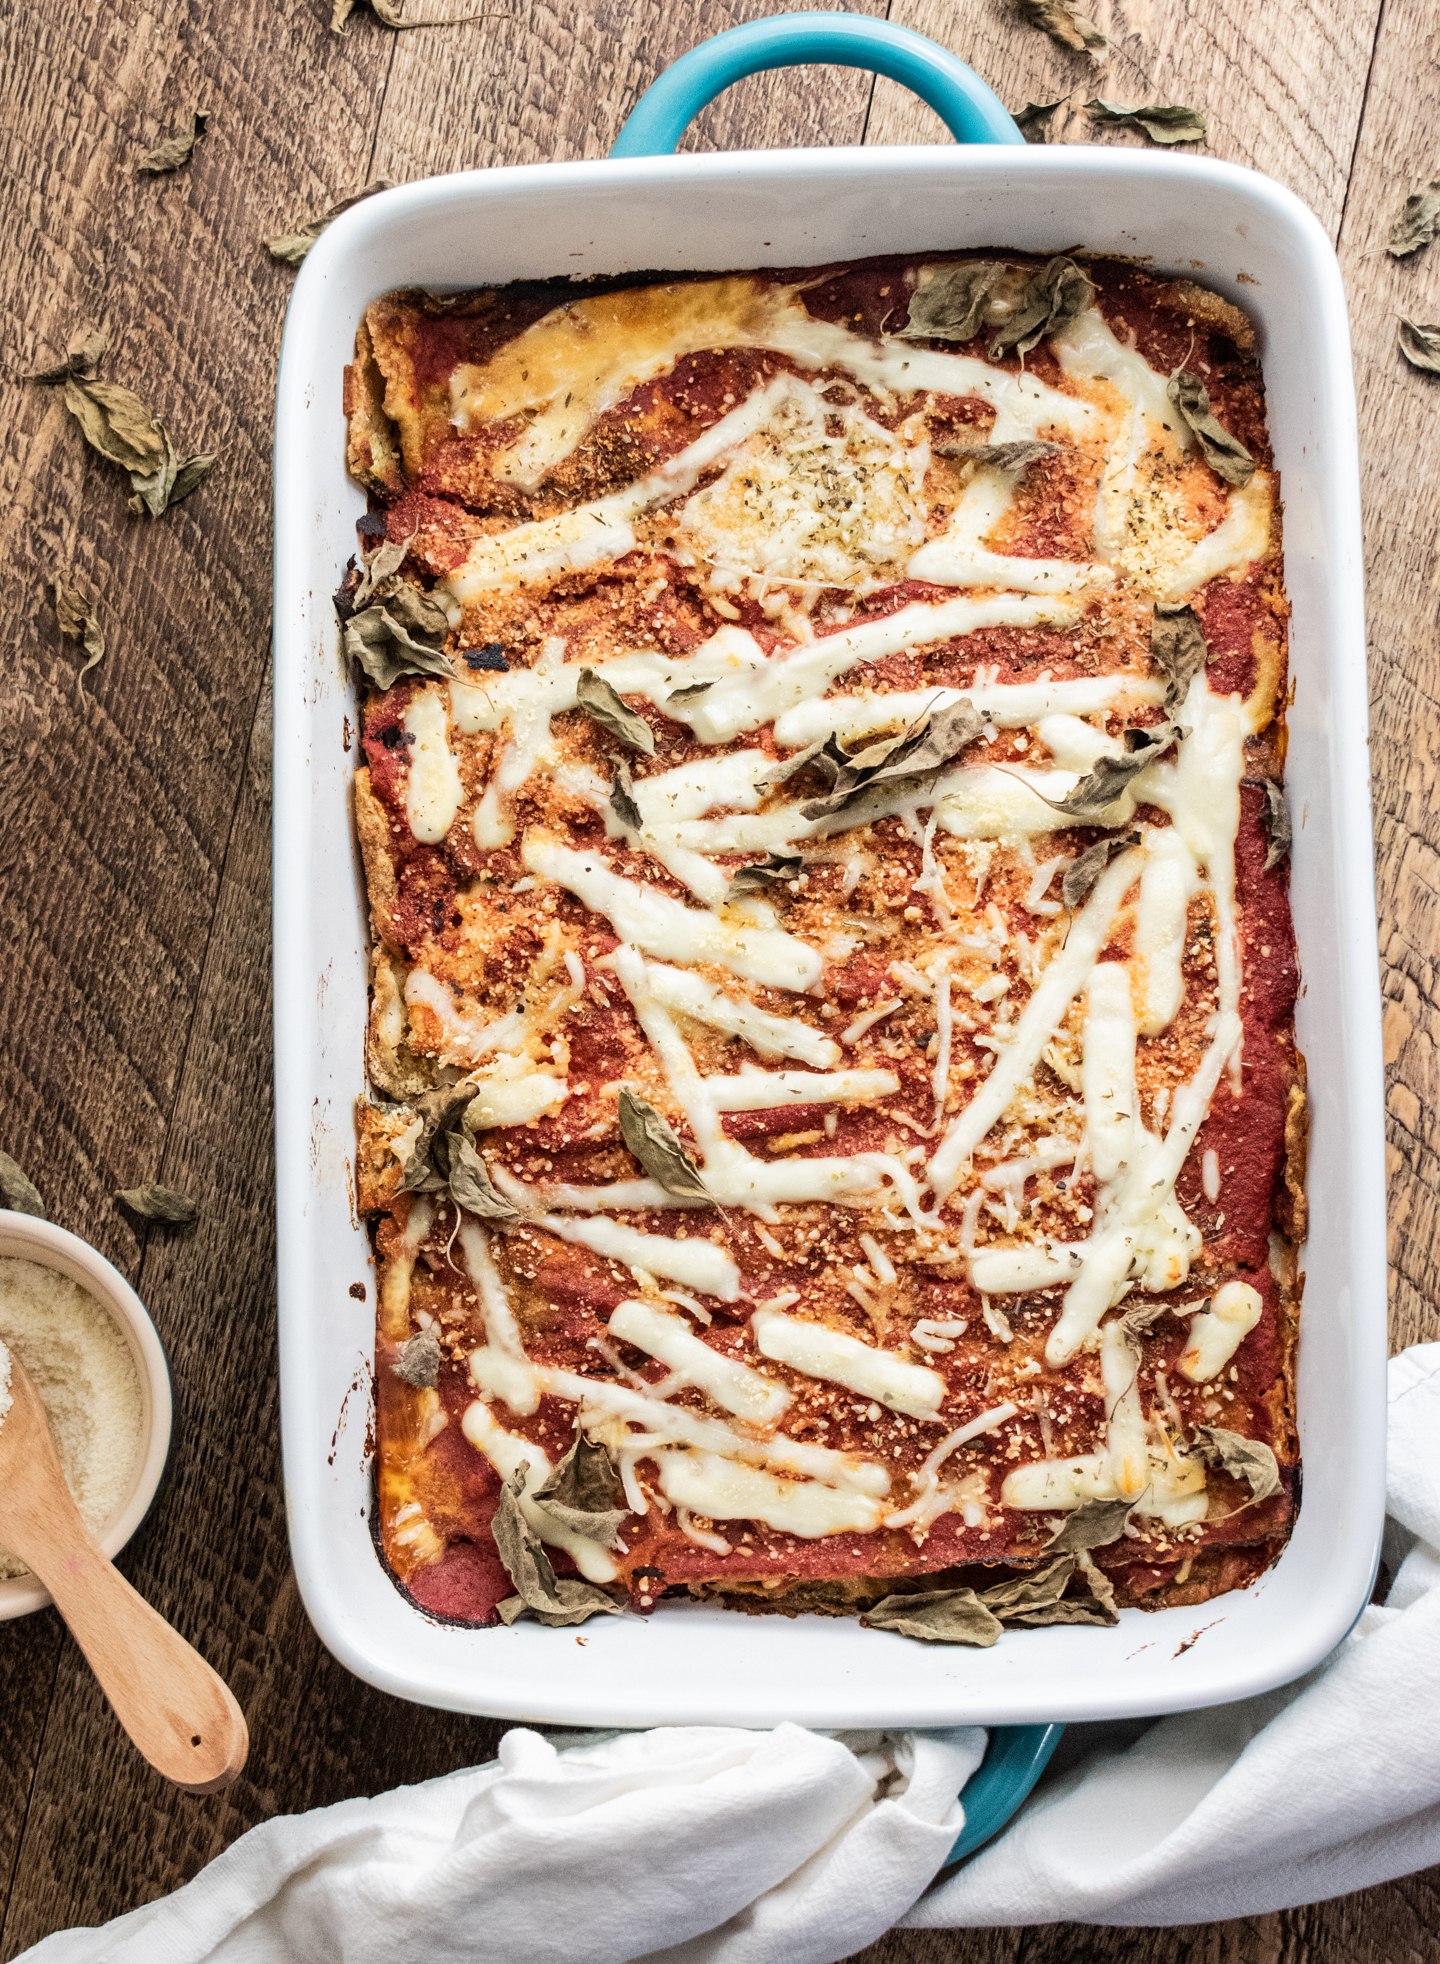 birds eye view of zucchini parmesan in a blue 9 x 13 inch baking dish on a wooden table